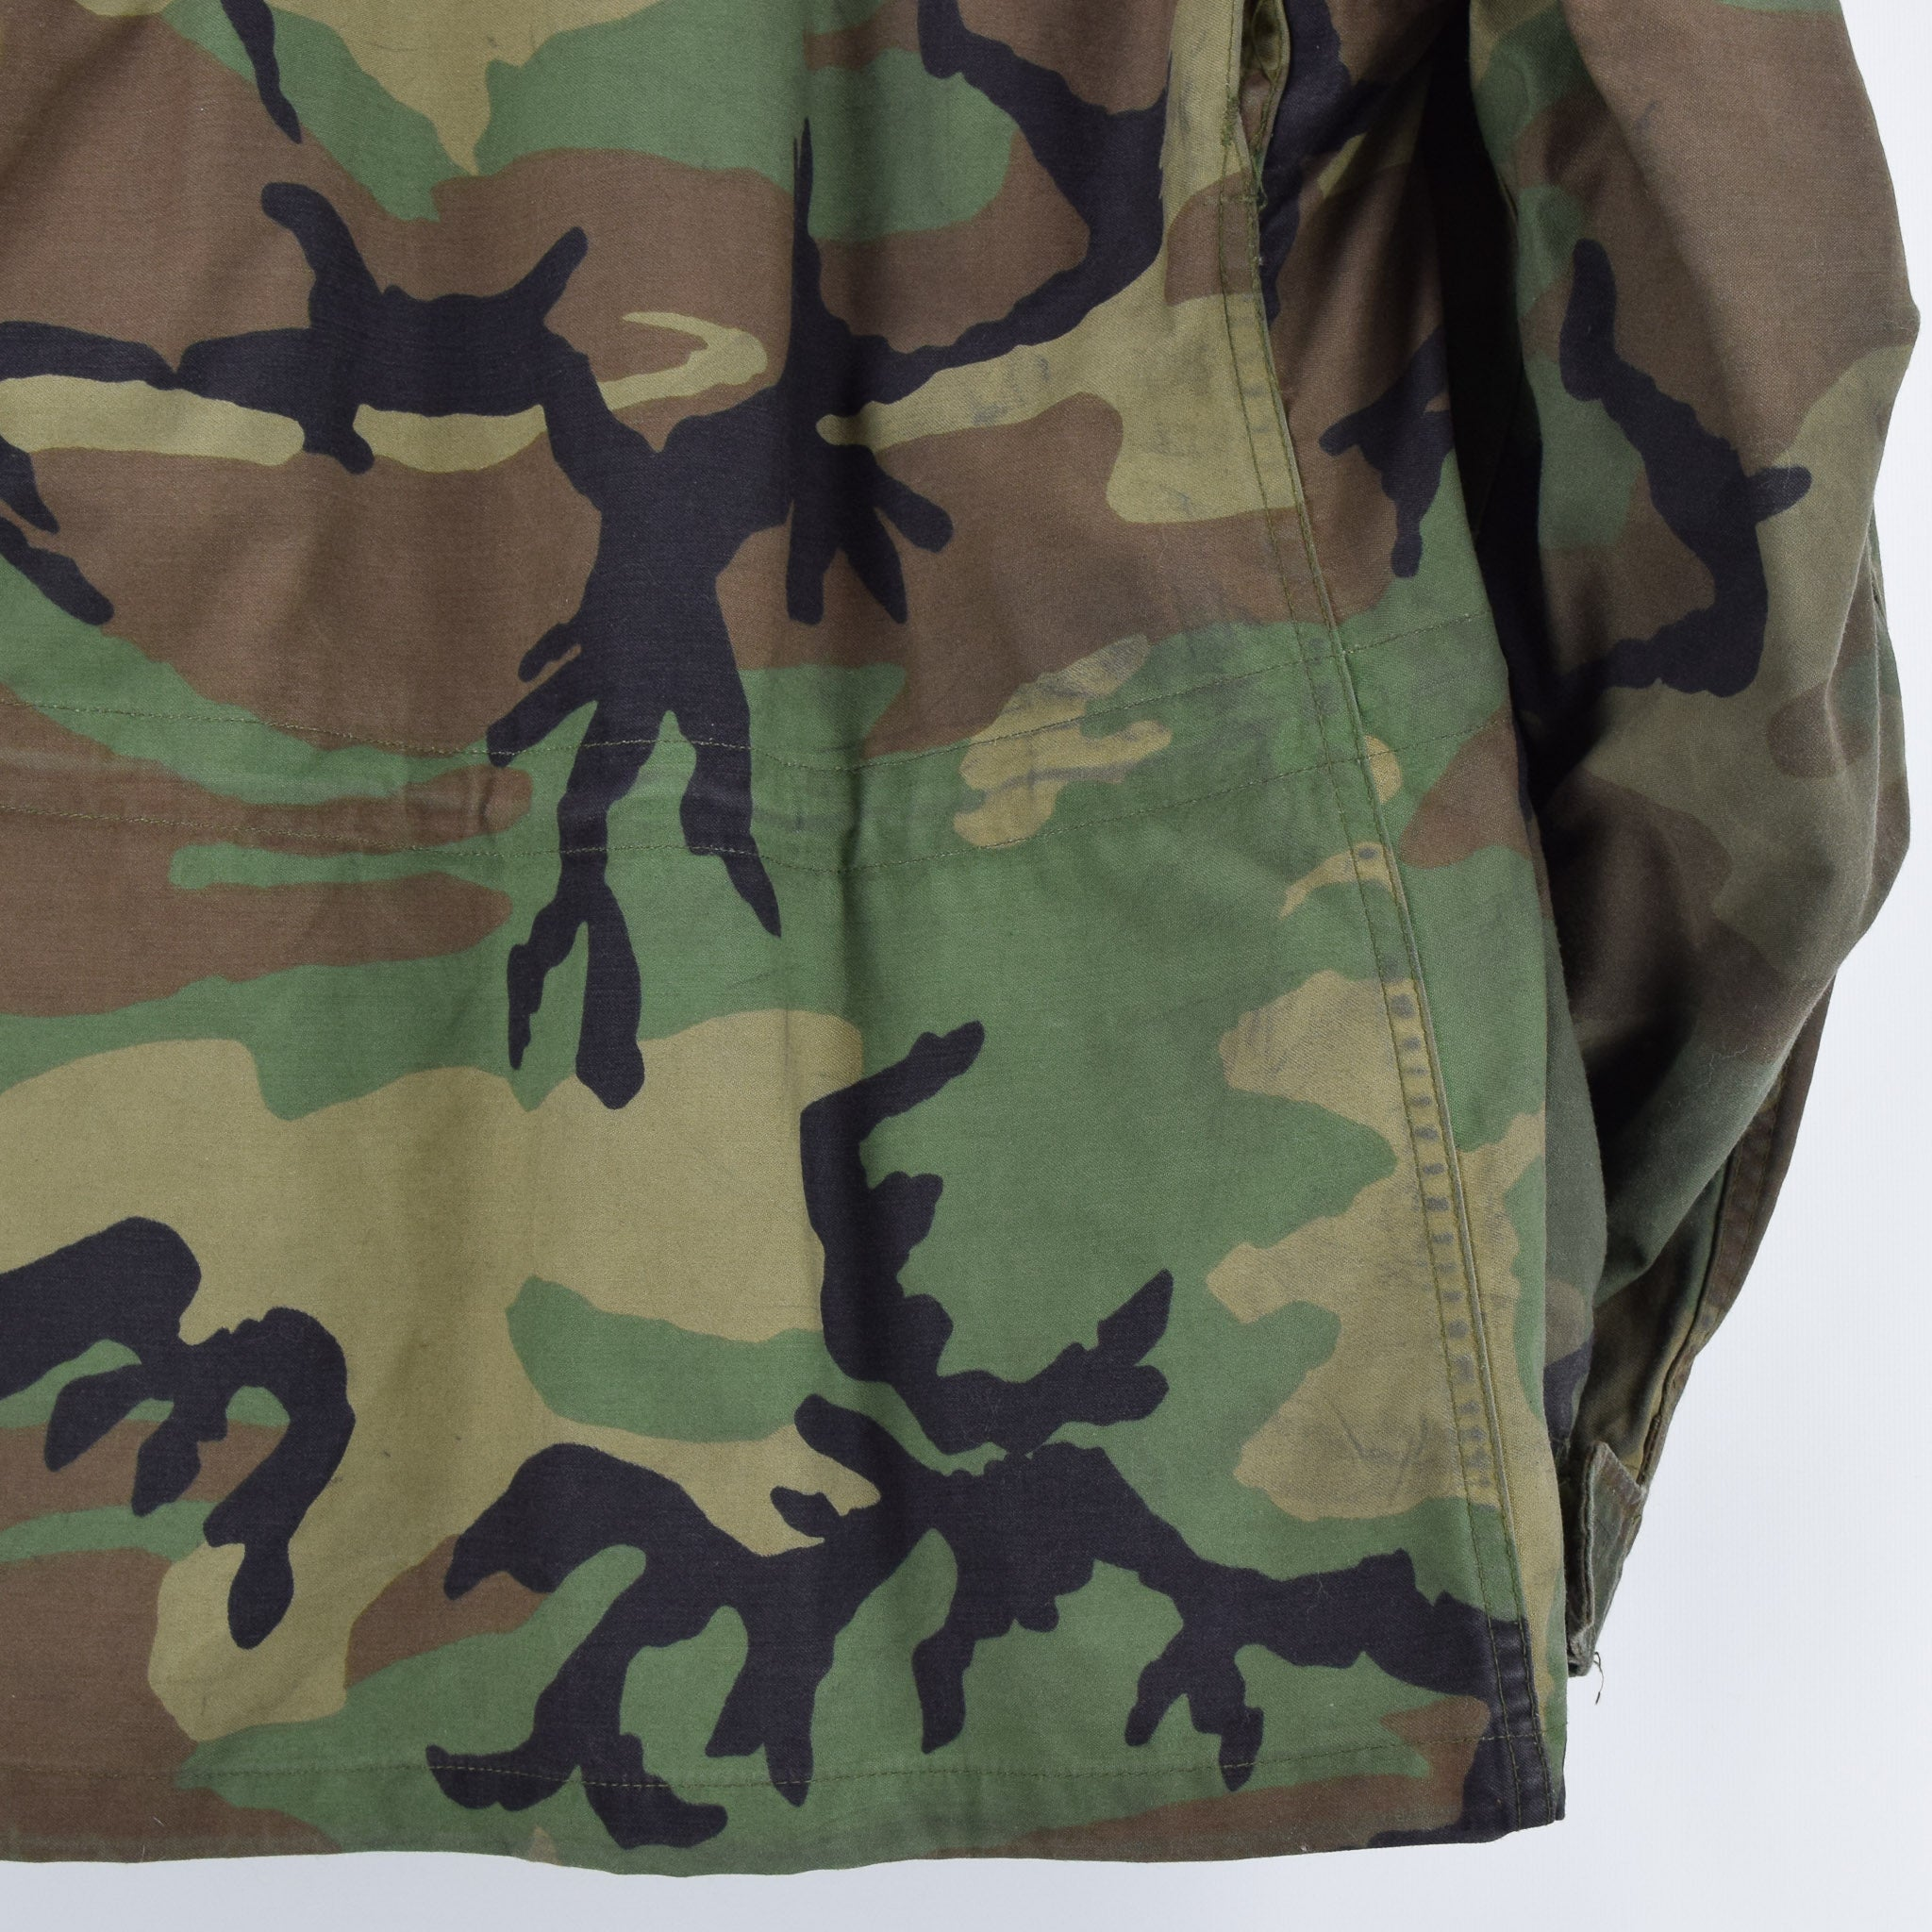 Vintage 80s M-65 Woodland Camouflage Field Coat Alpha Industries Army Jacket M back hem